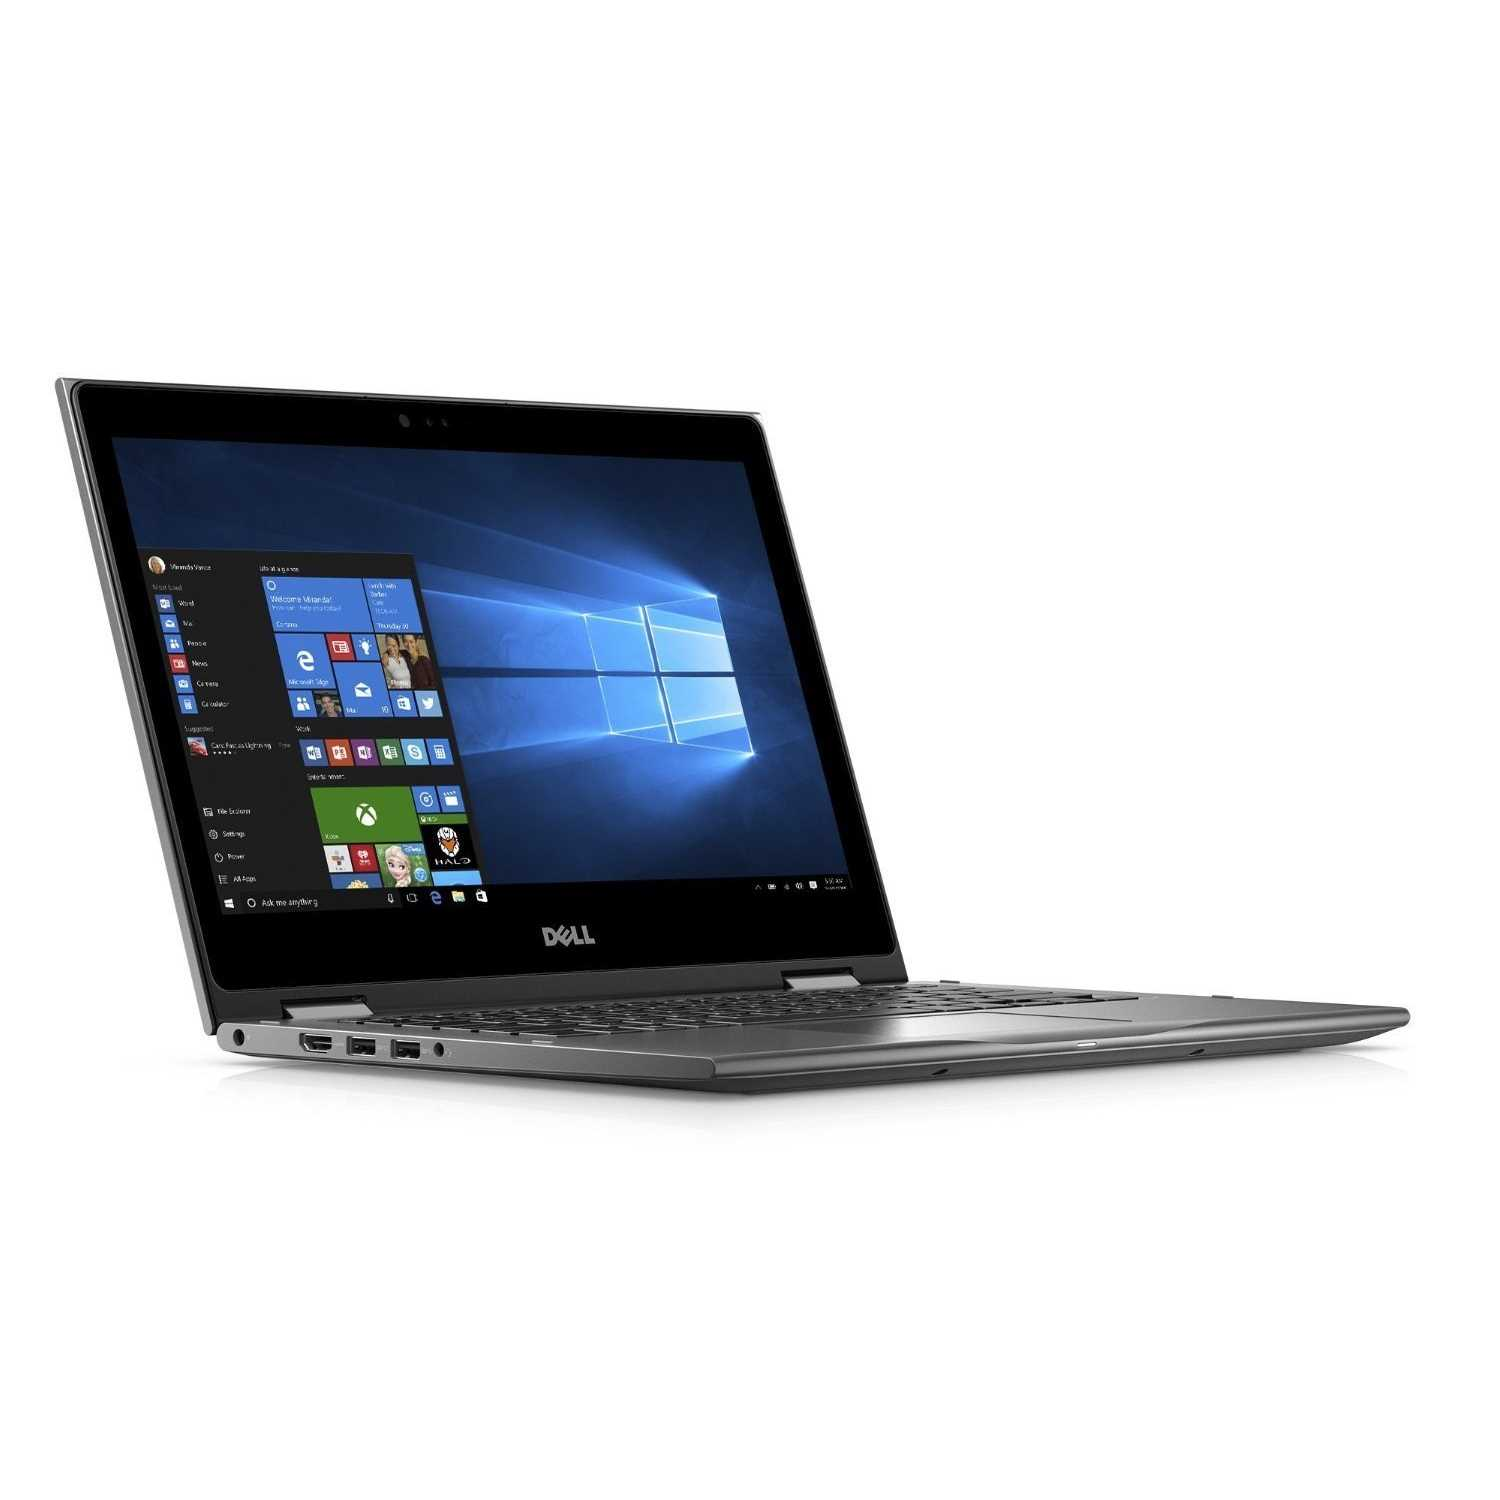 Dell Inspiron 7373 (A569502WIN9) Laptop